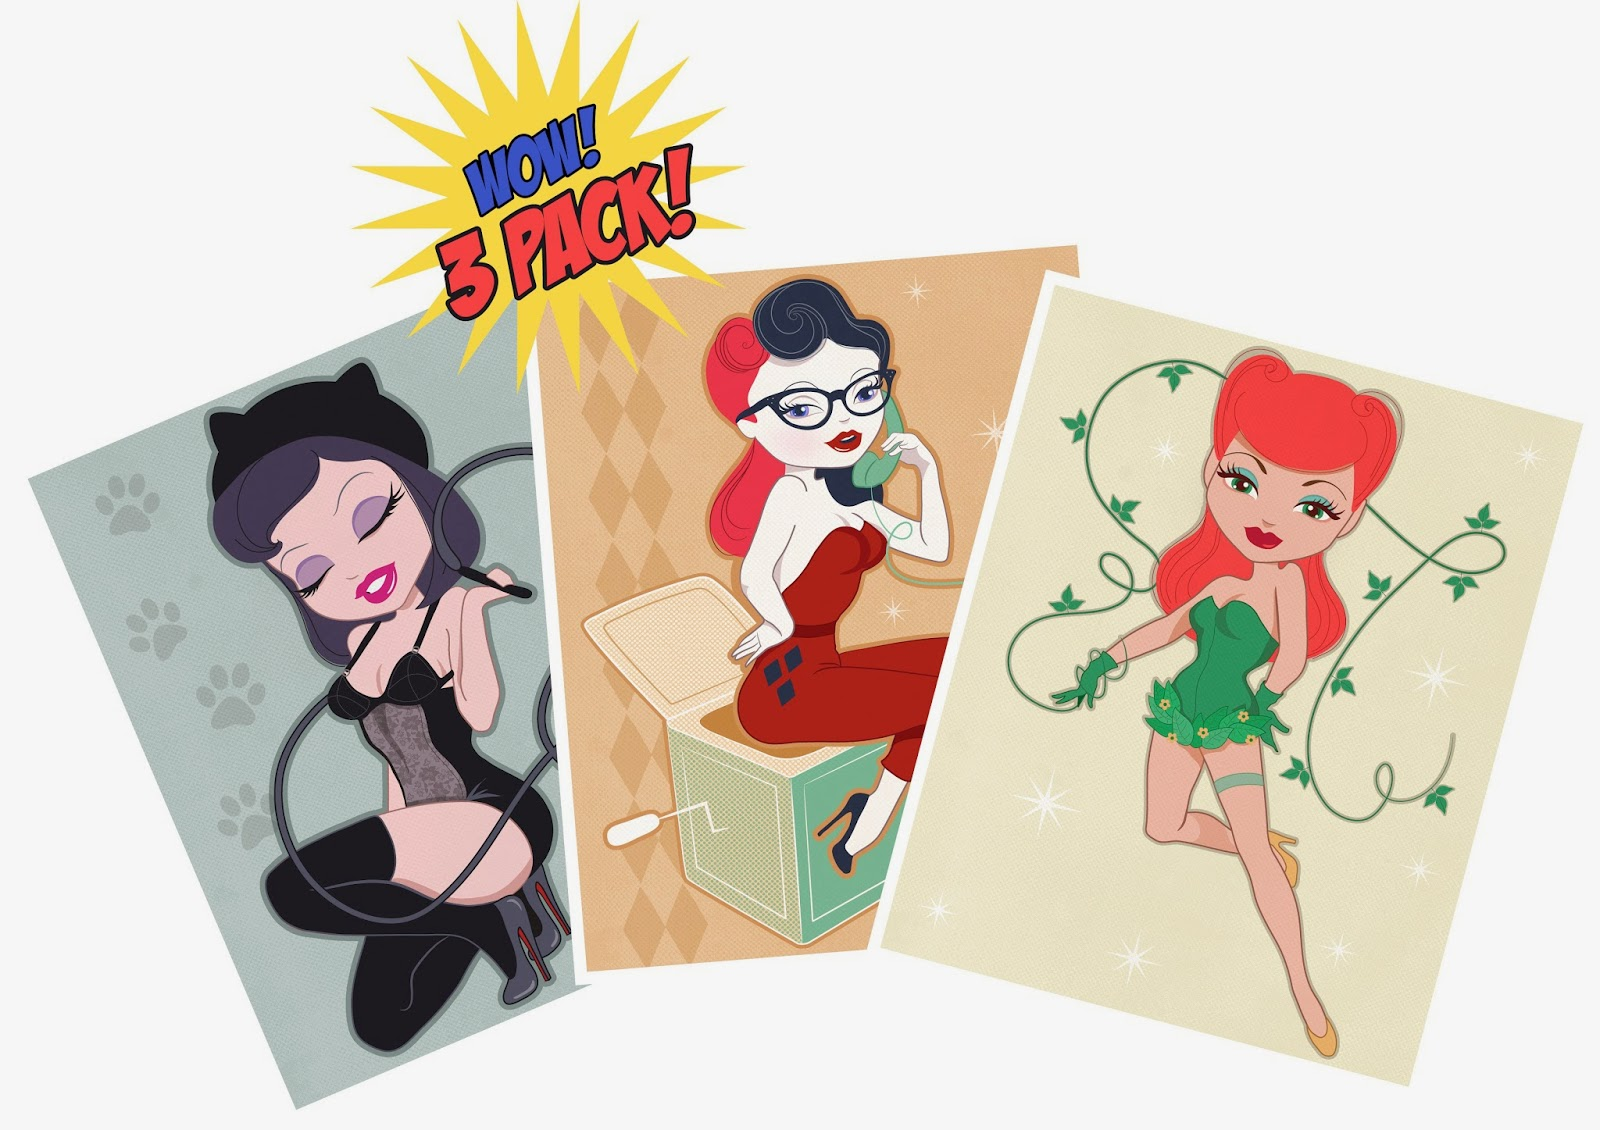 https://www.etsy.com/listing/197379670/3-pack-of-8x10-gotham-vixens-prints?ref=shop_home_active_2